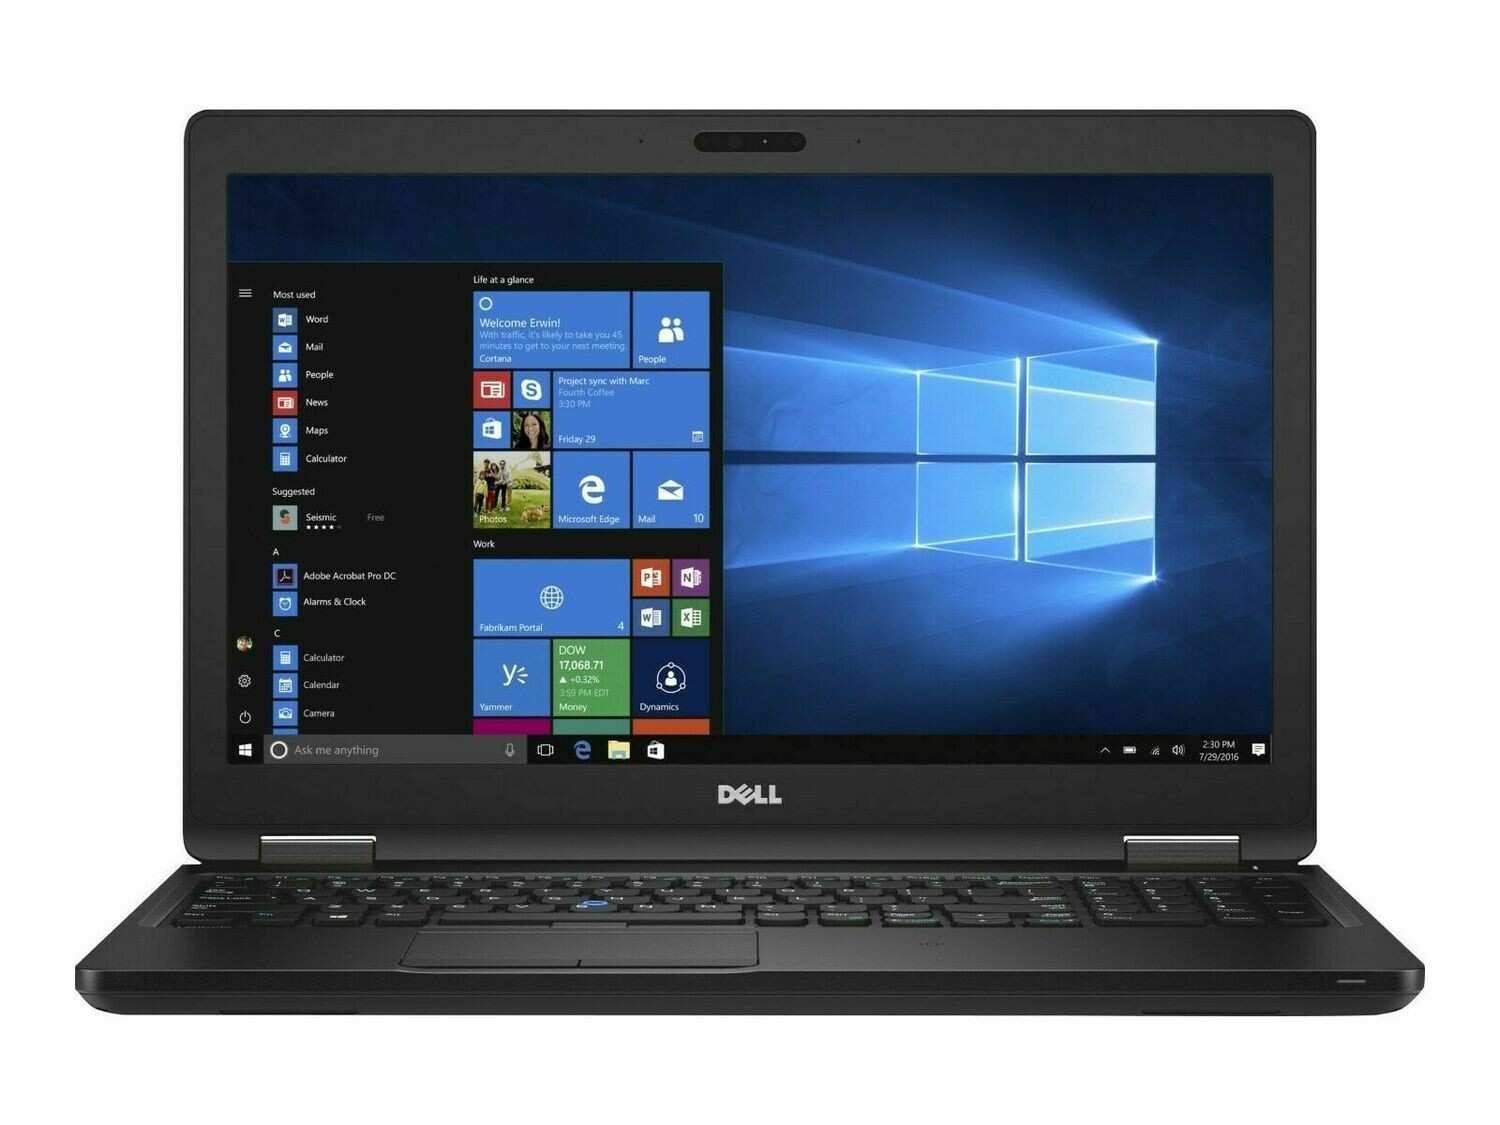 DELL LATITUDE 5580 15.6''- i7 processor- windows 10 pro